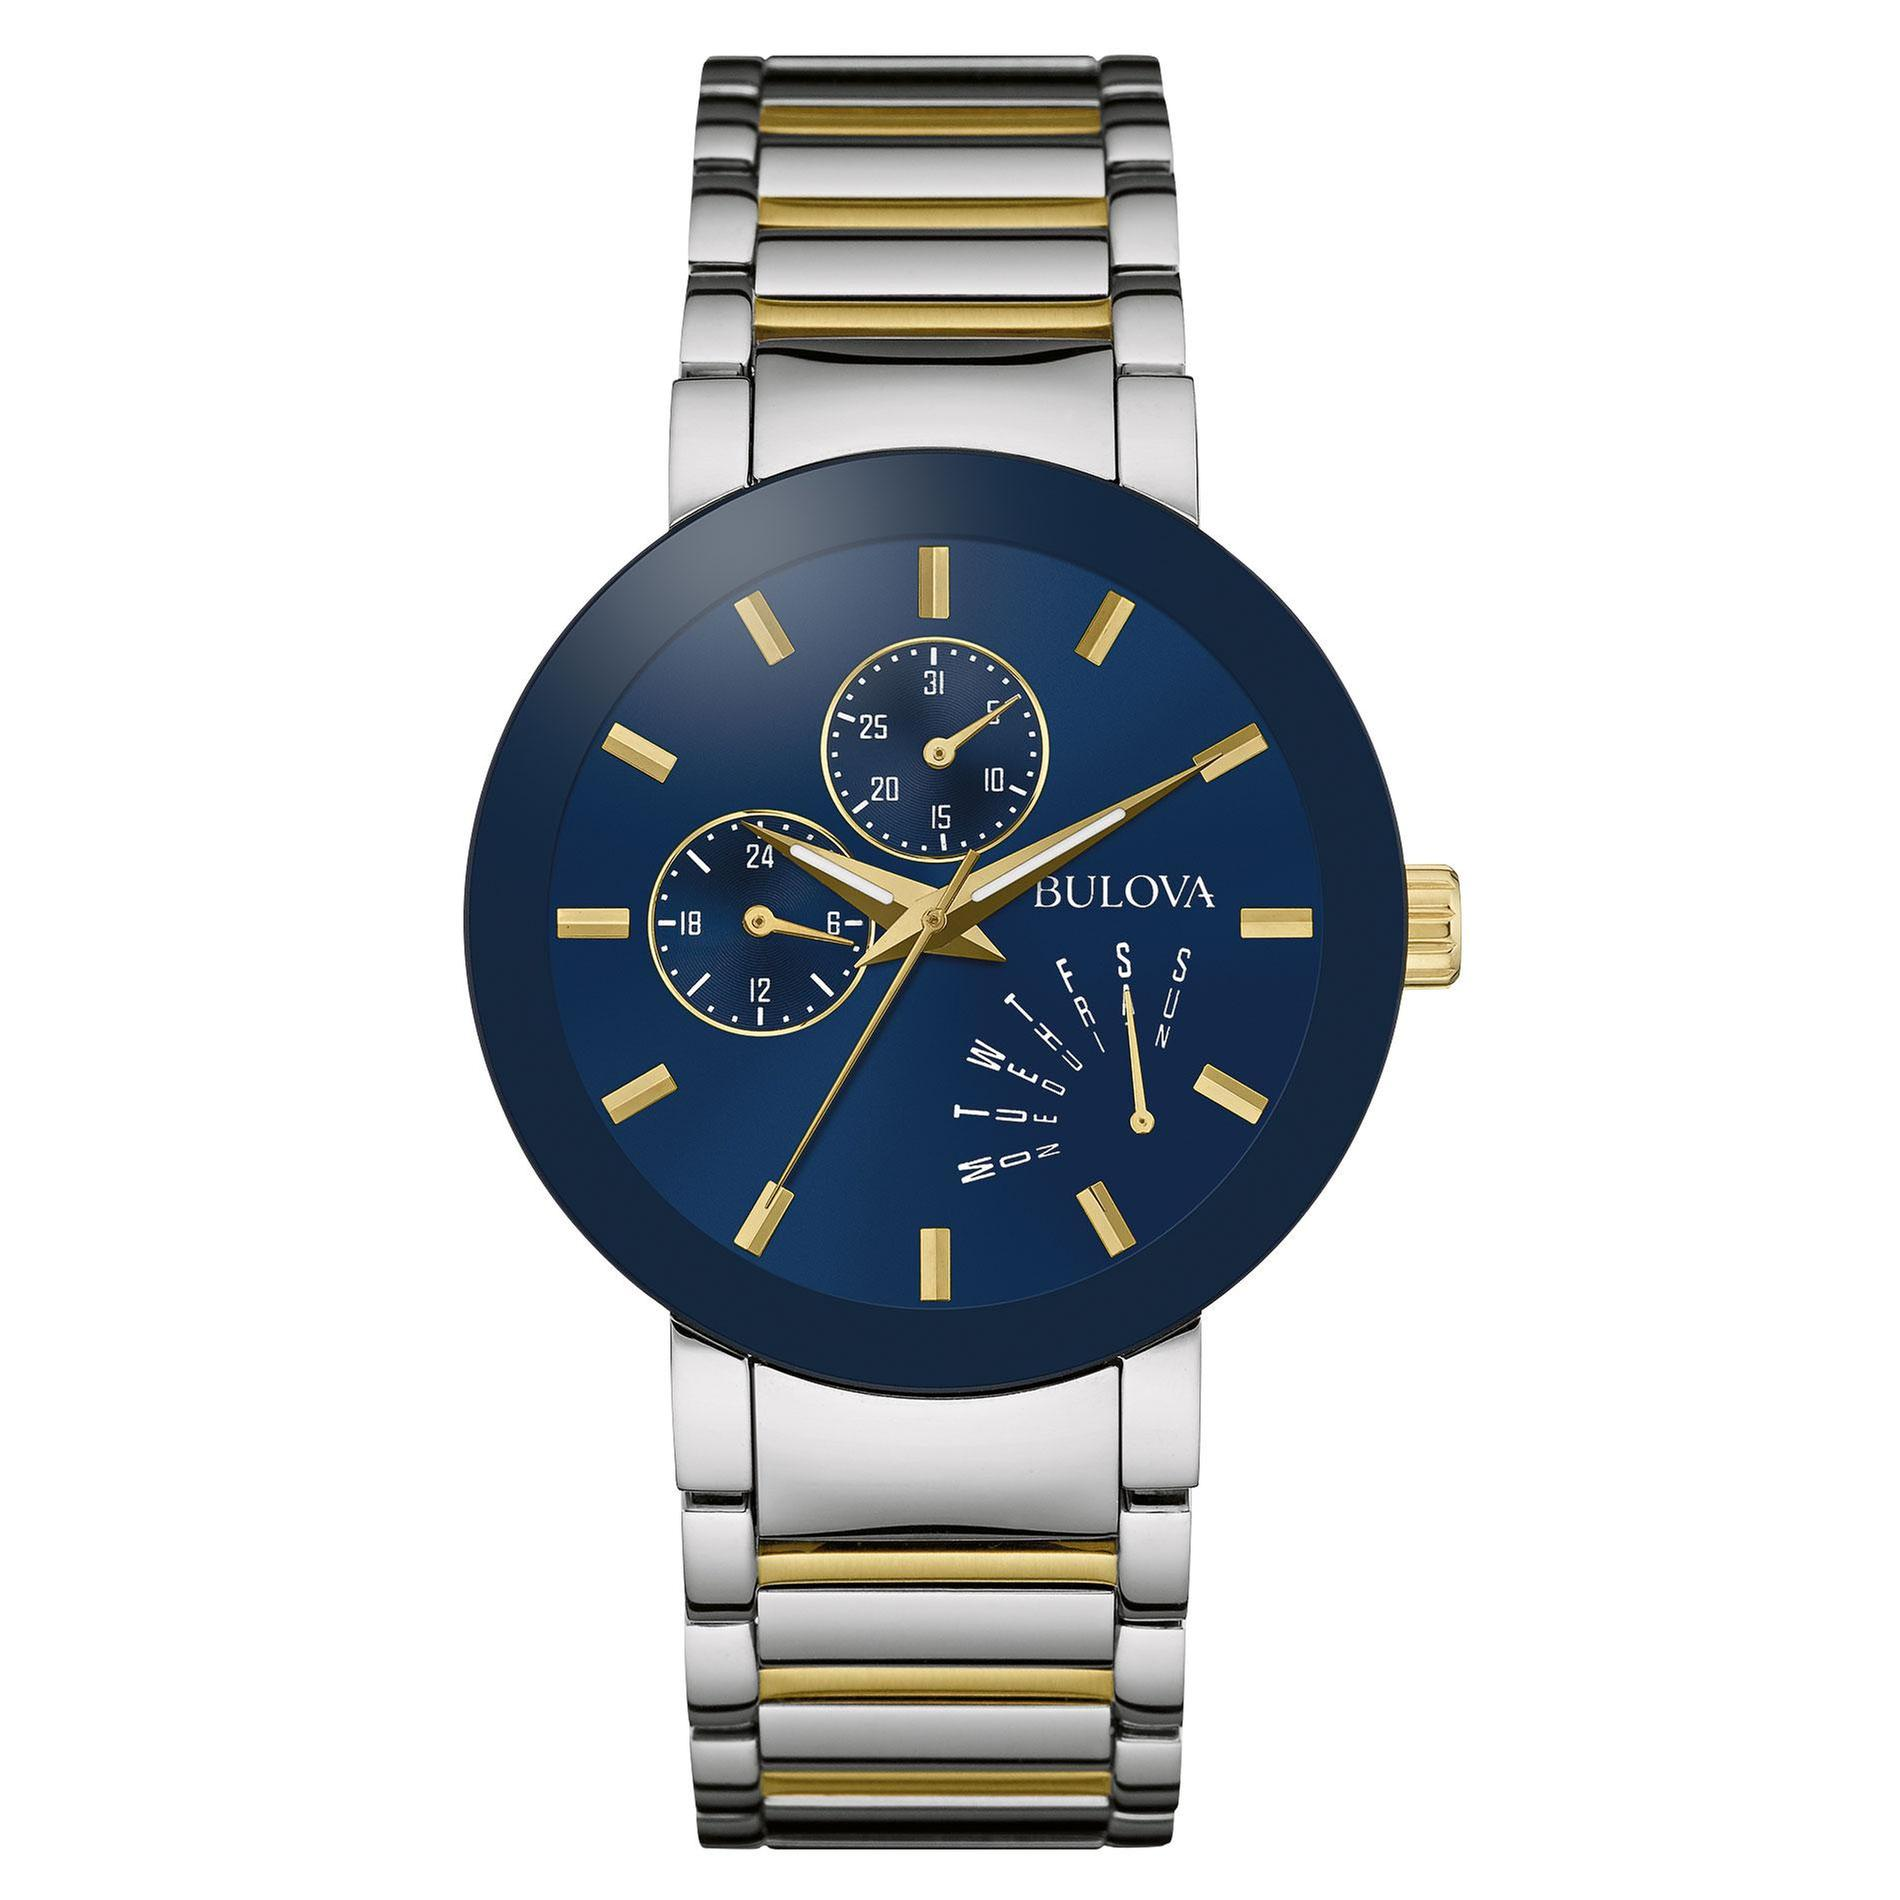 Bulova watches for men